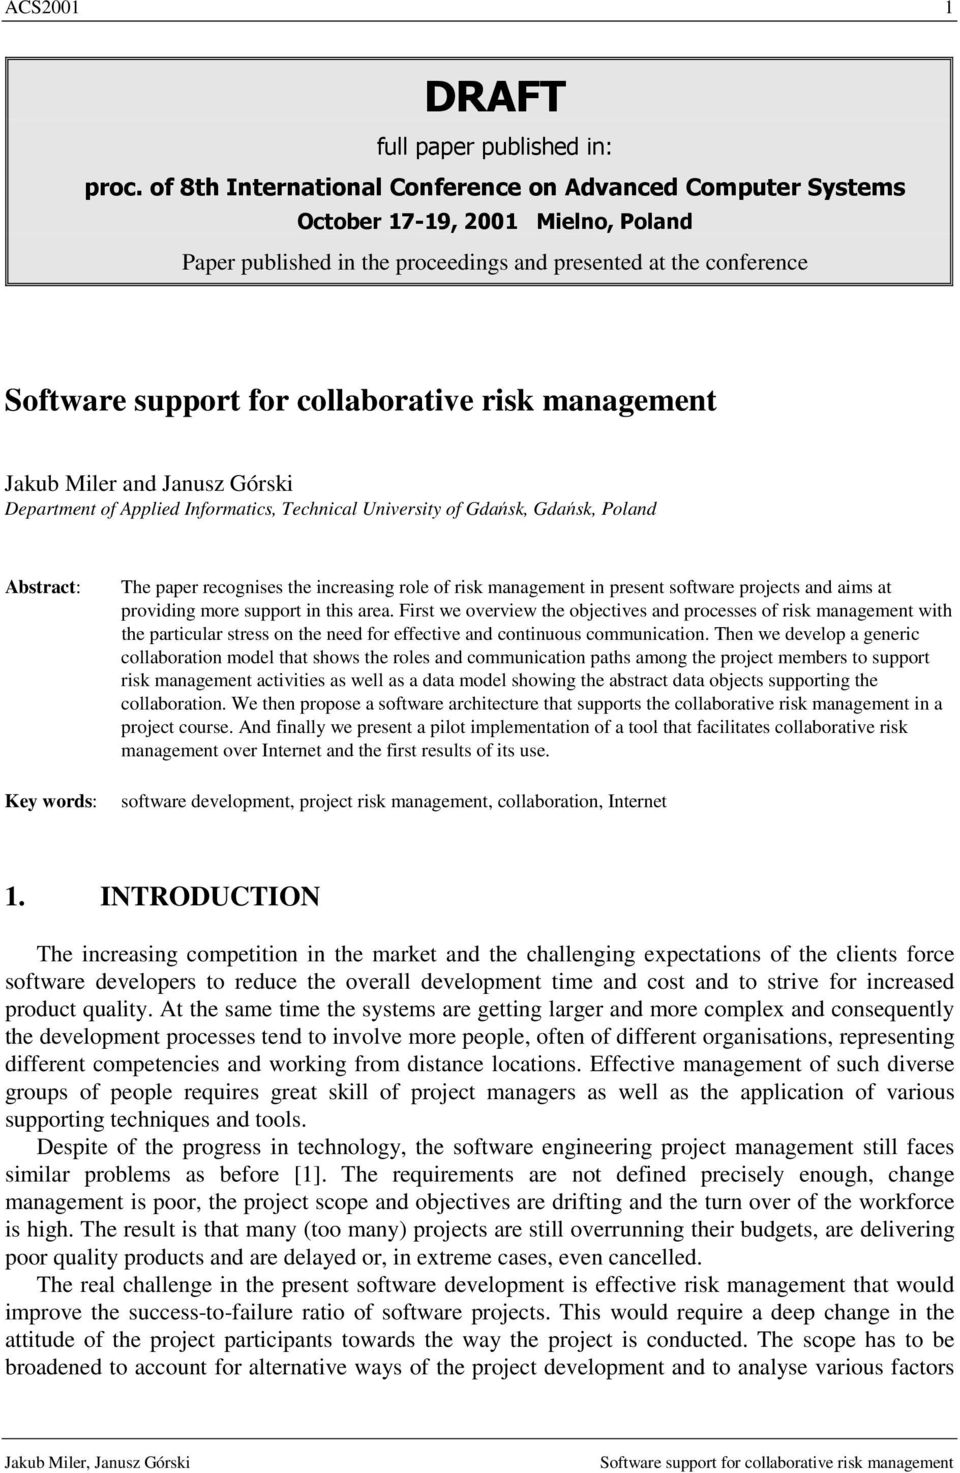 Department of Applied Informatics, Technical University of Gdańsk, Gdańsk, Poland Abstract: Key words: The paper recognises the increasing role of risk management in present software projects and